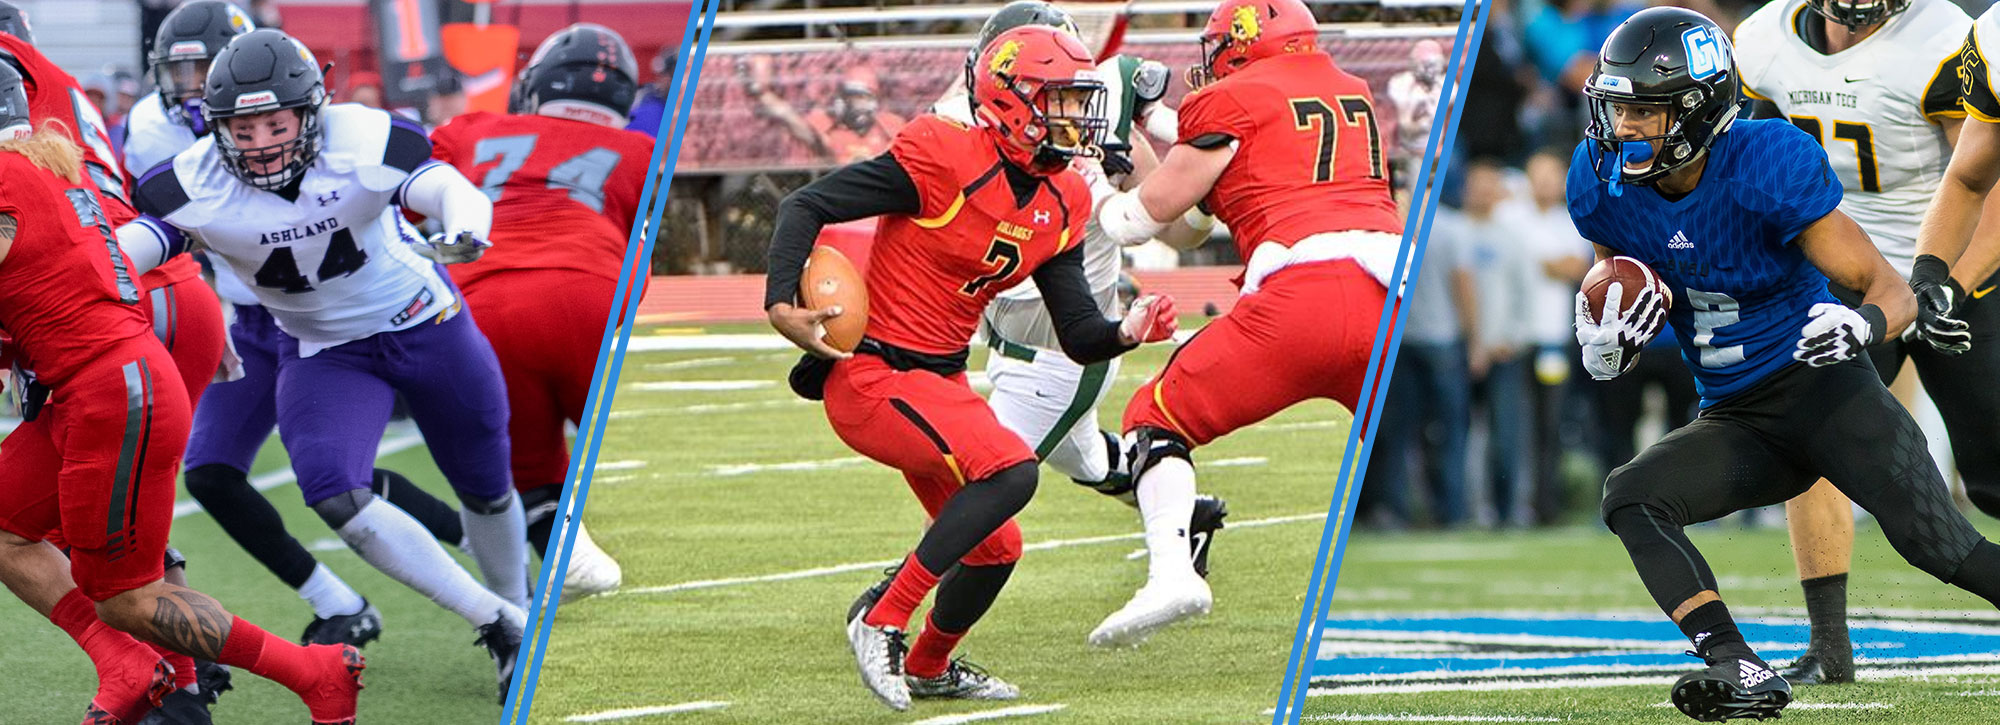 Ferris State's Campbell, Ashland's Reichelderfer & Grand Valley State's Dodson Earn GLIAC Football Player of the Week Distinction